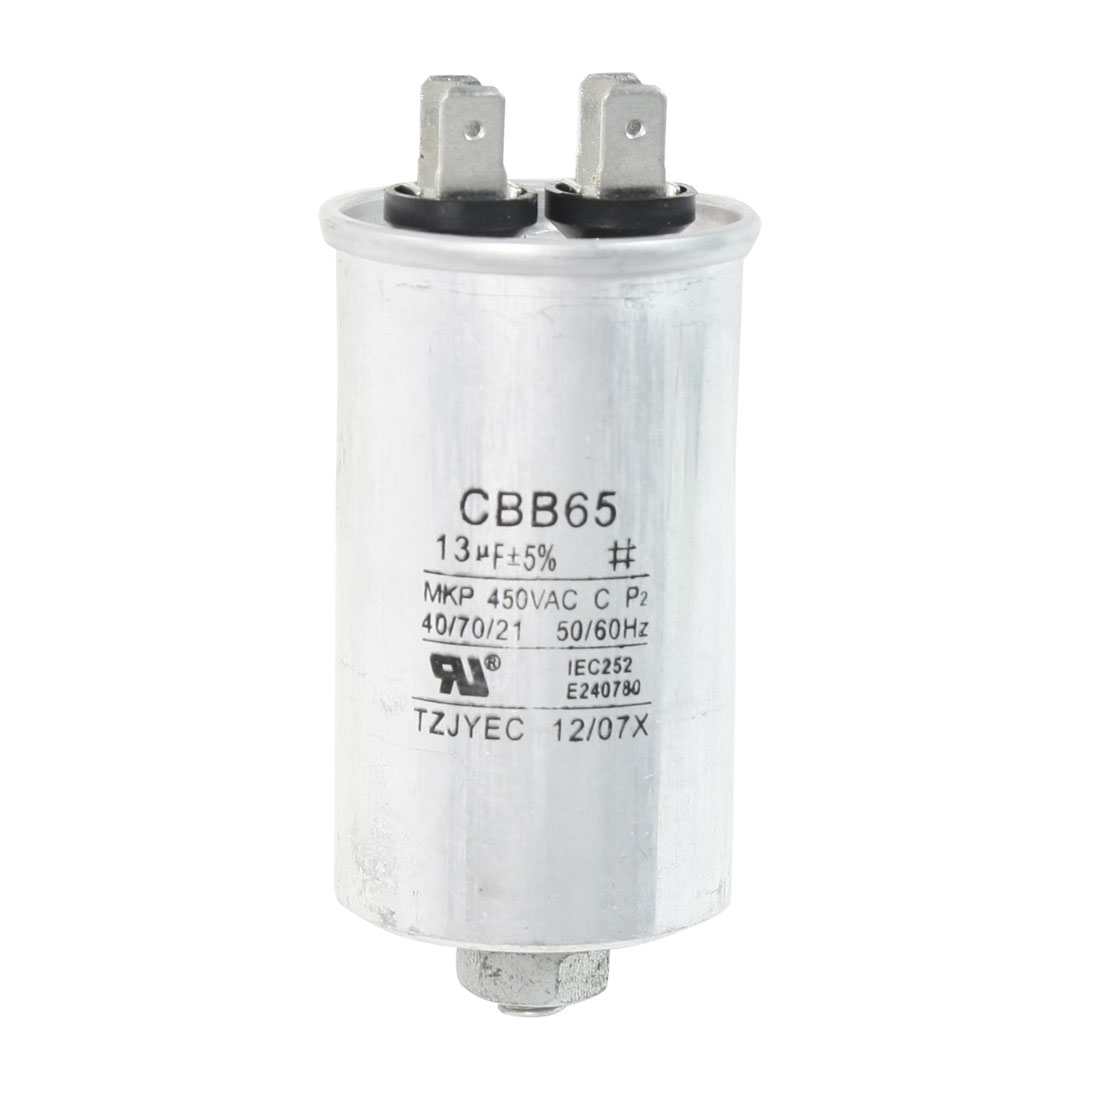 Air Conditioner AC 450V 13uF Cylindrical Motor Capacitor CBB65